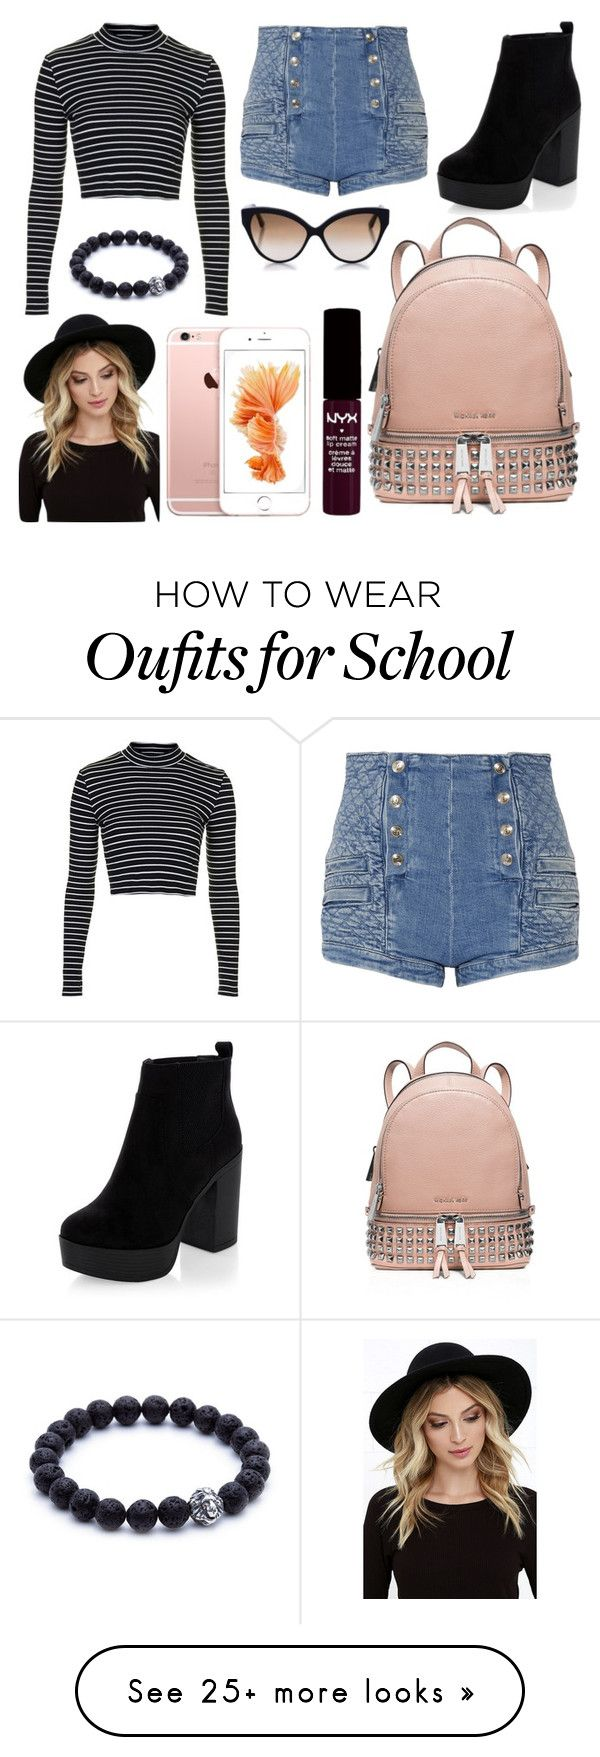 """""""School Day"""" by susanna-trad on Polyvore featuring Topshop, Pierre Balmain, MICHAEL Michael Kors, RHYTHM, Cutler and Gross and NYX"""